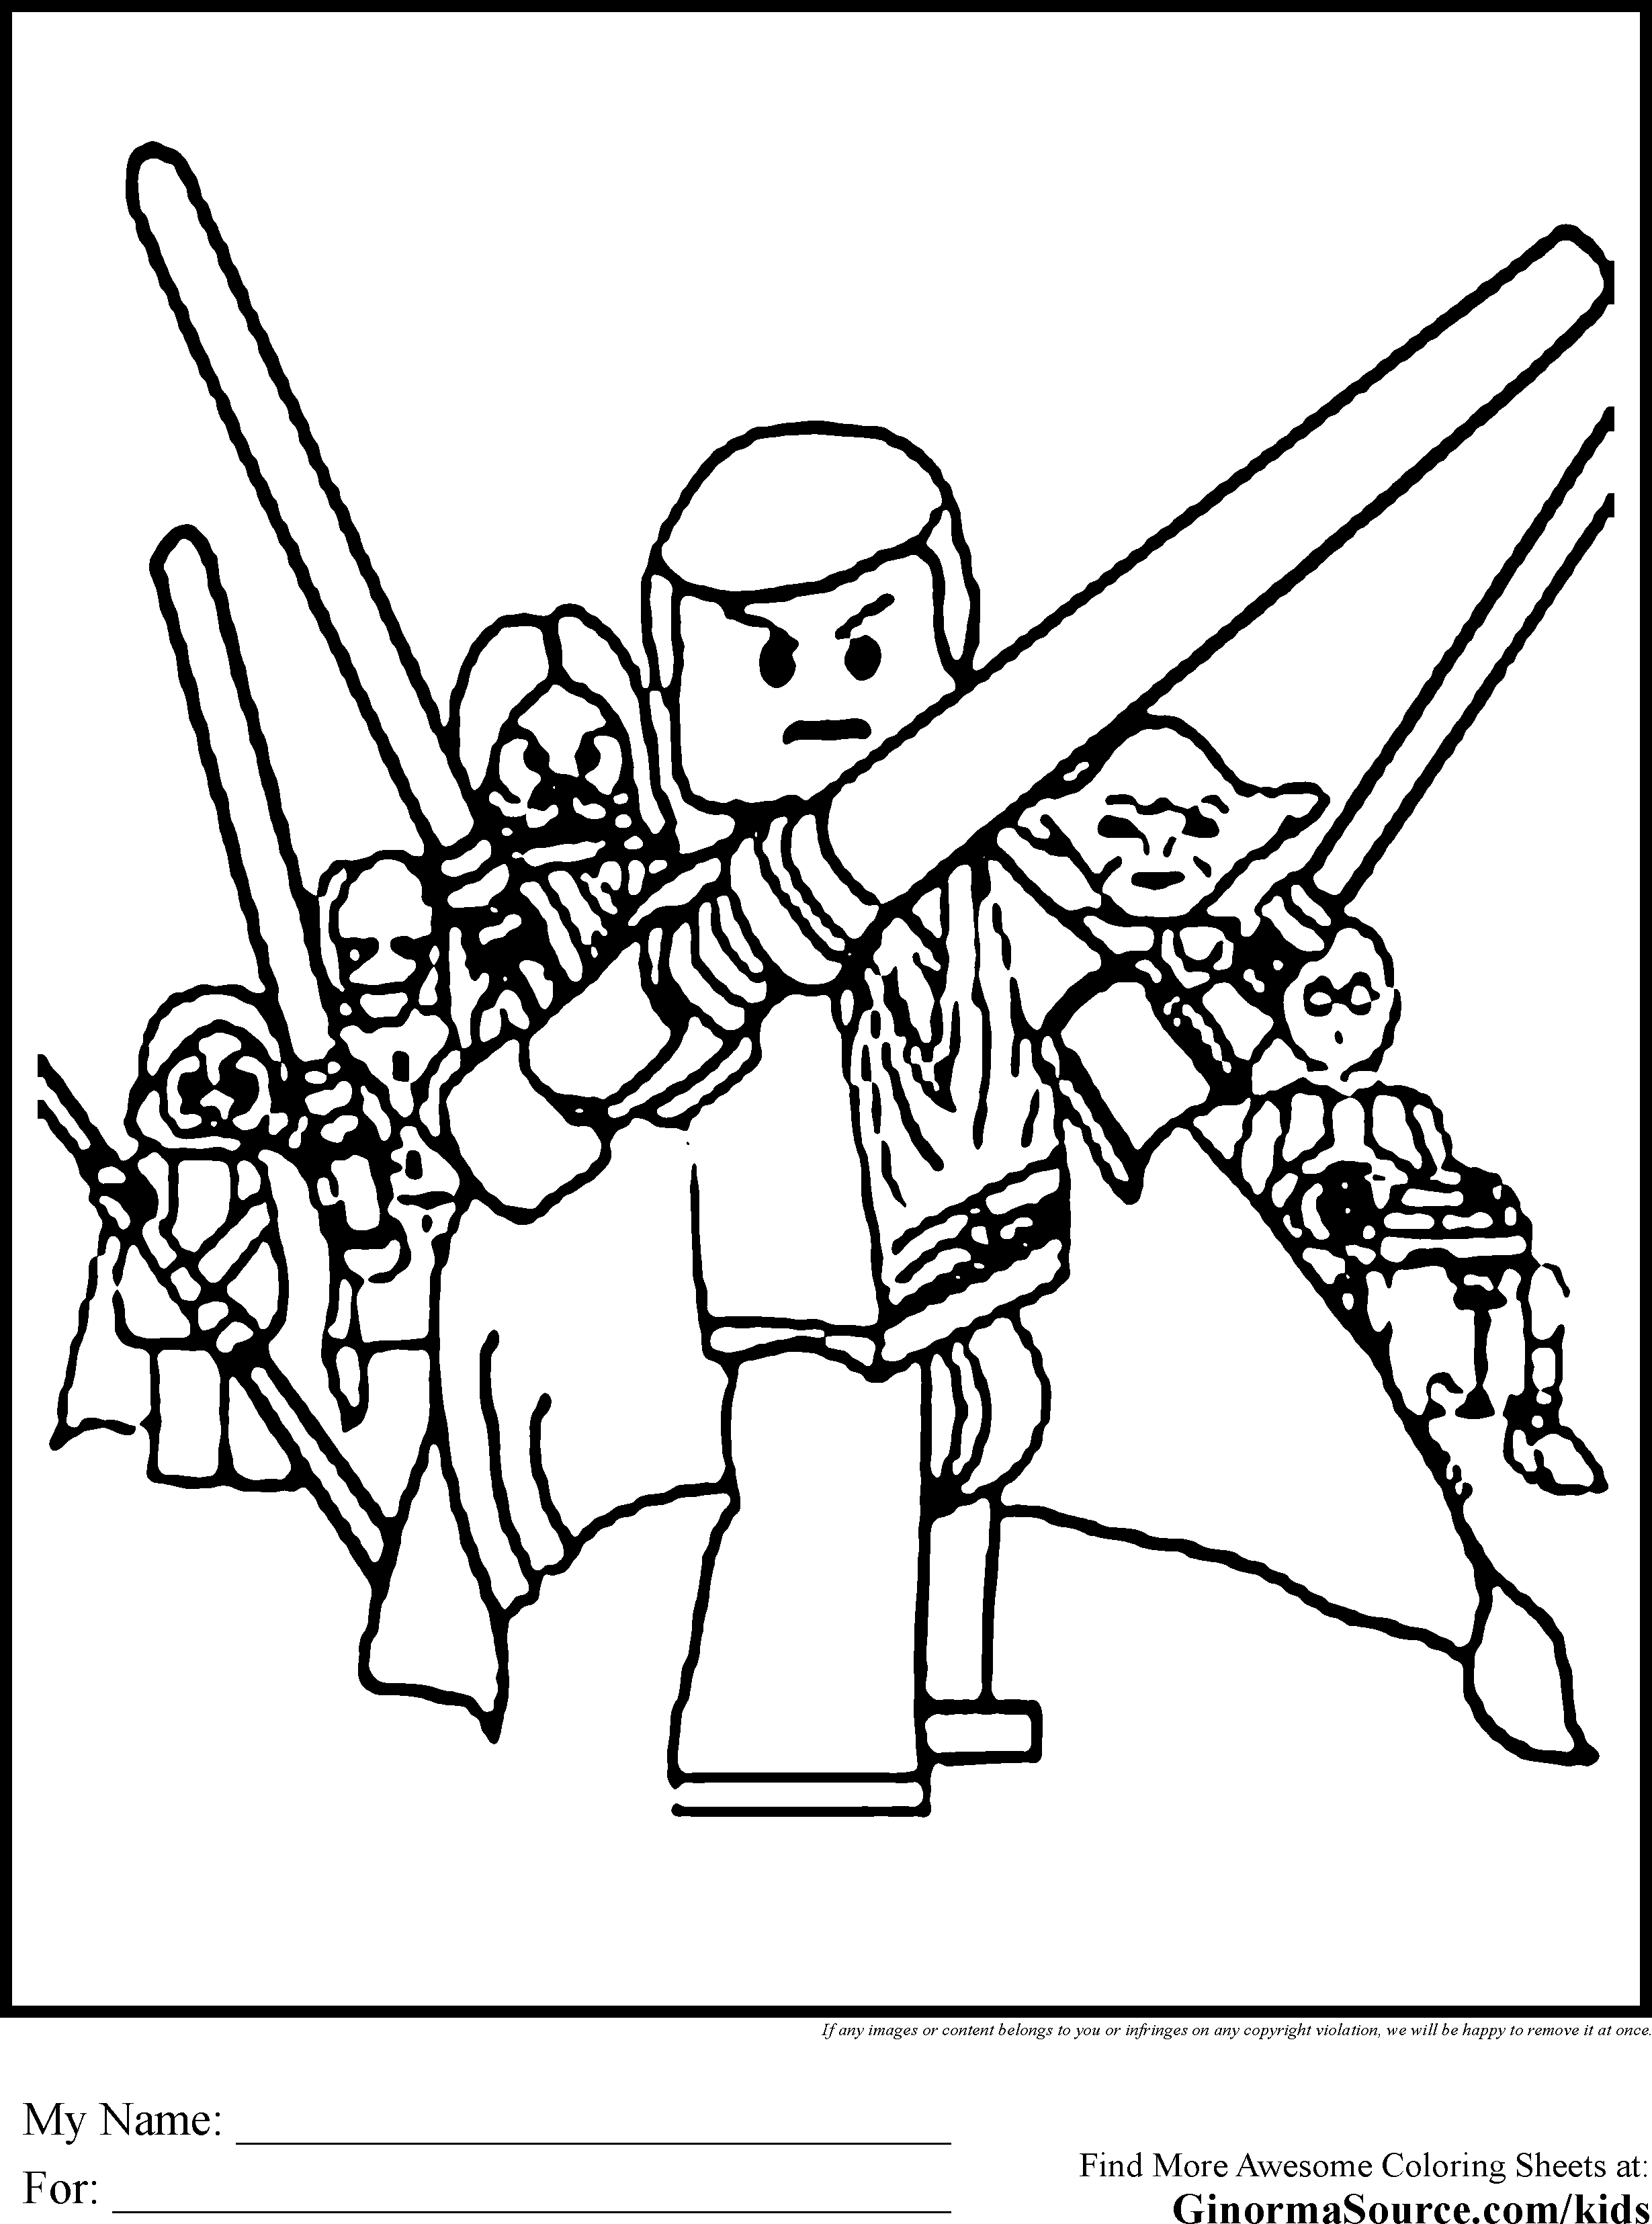 Online childrens coloring pages - Star Wars Coloring Pages That You Can Color Online Printerkids Printable Coloring Pages For Kids Star